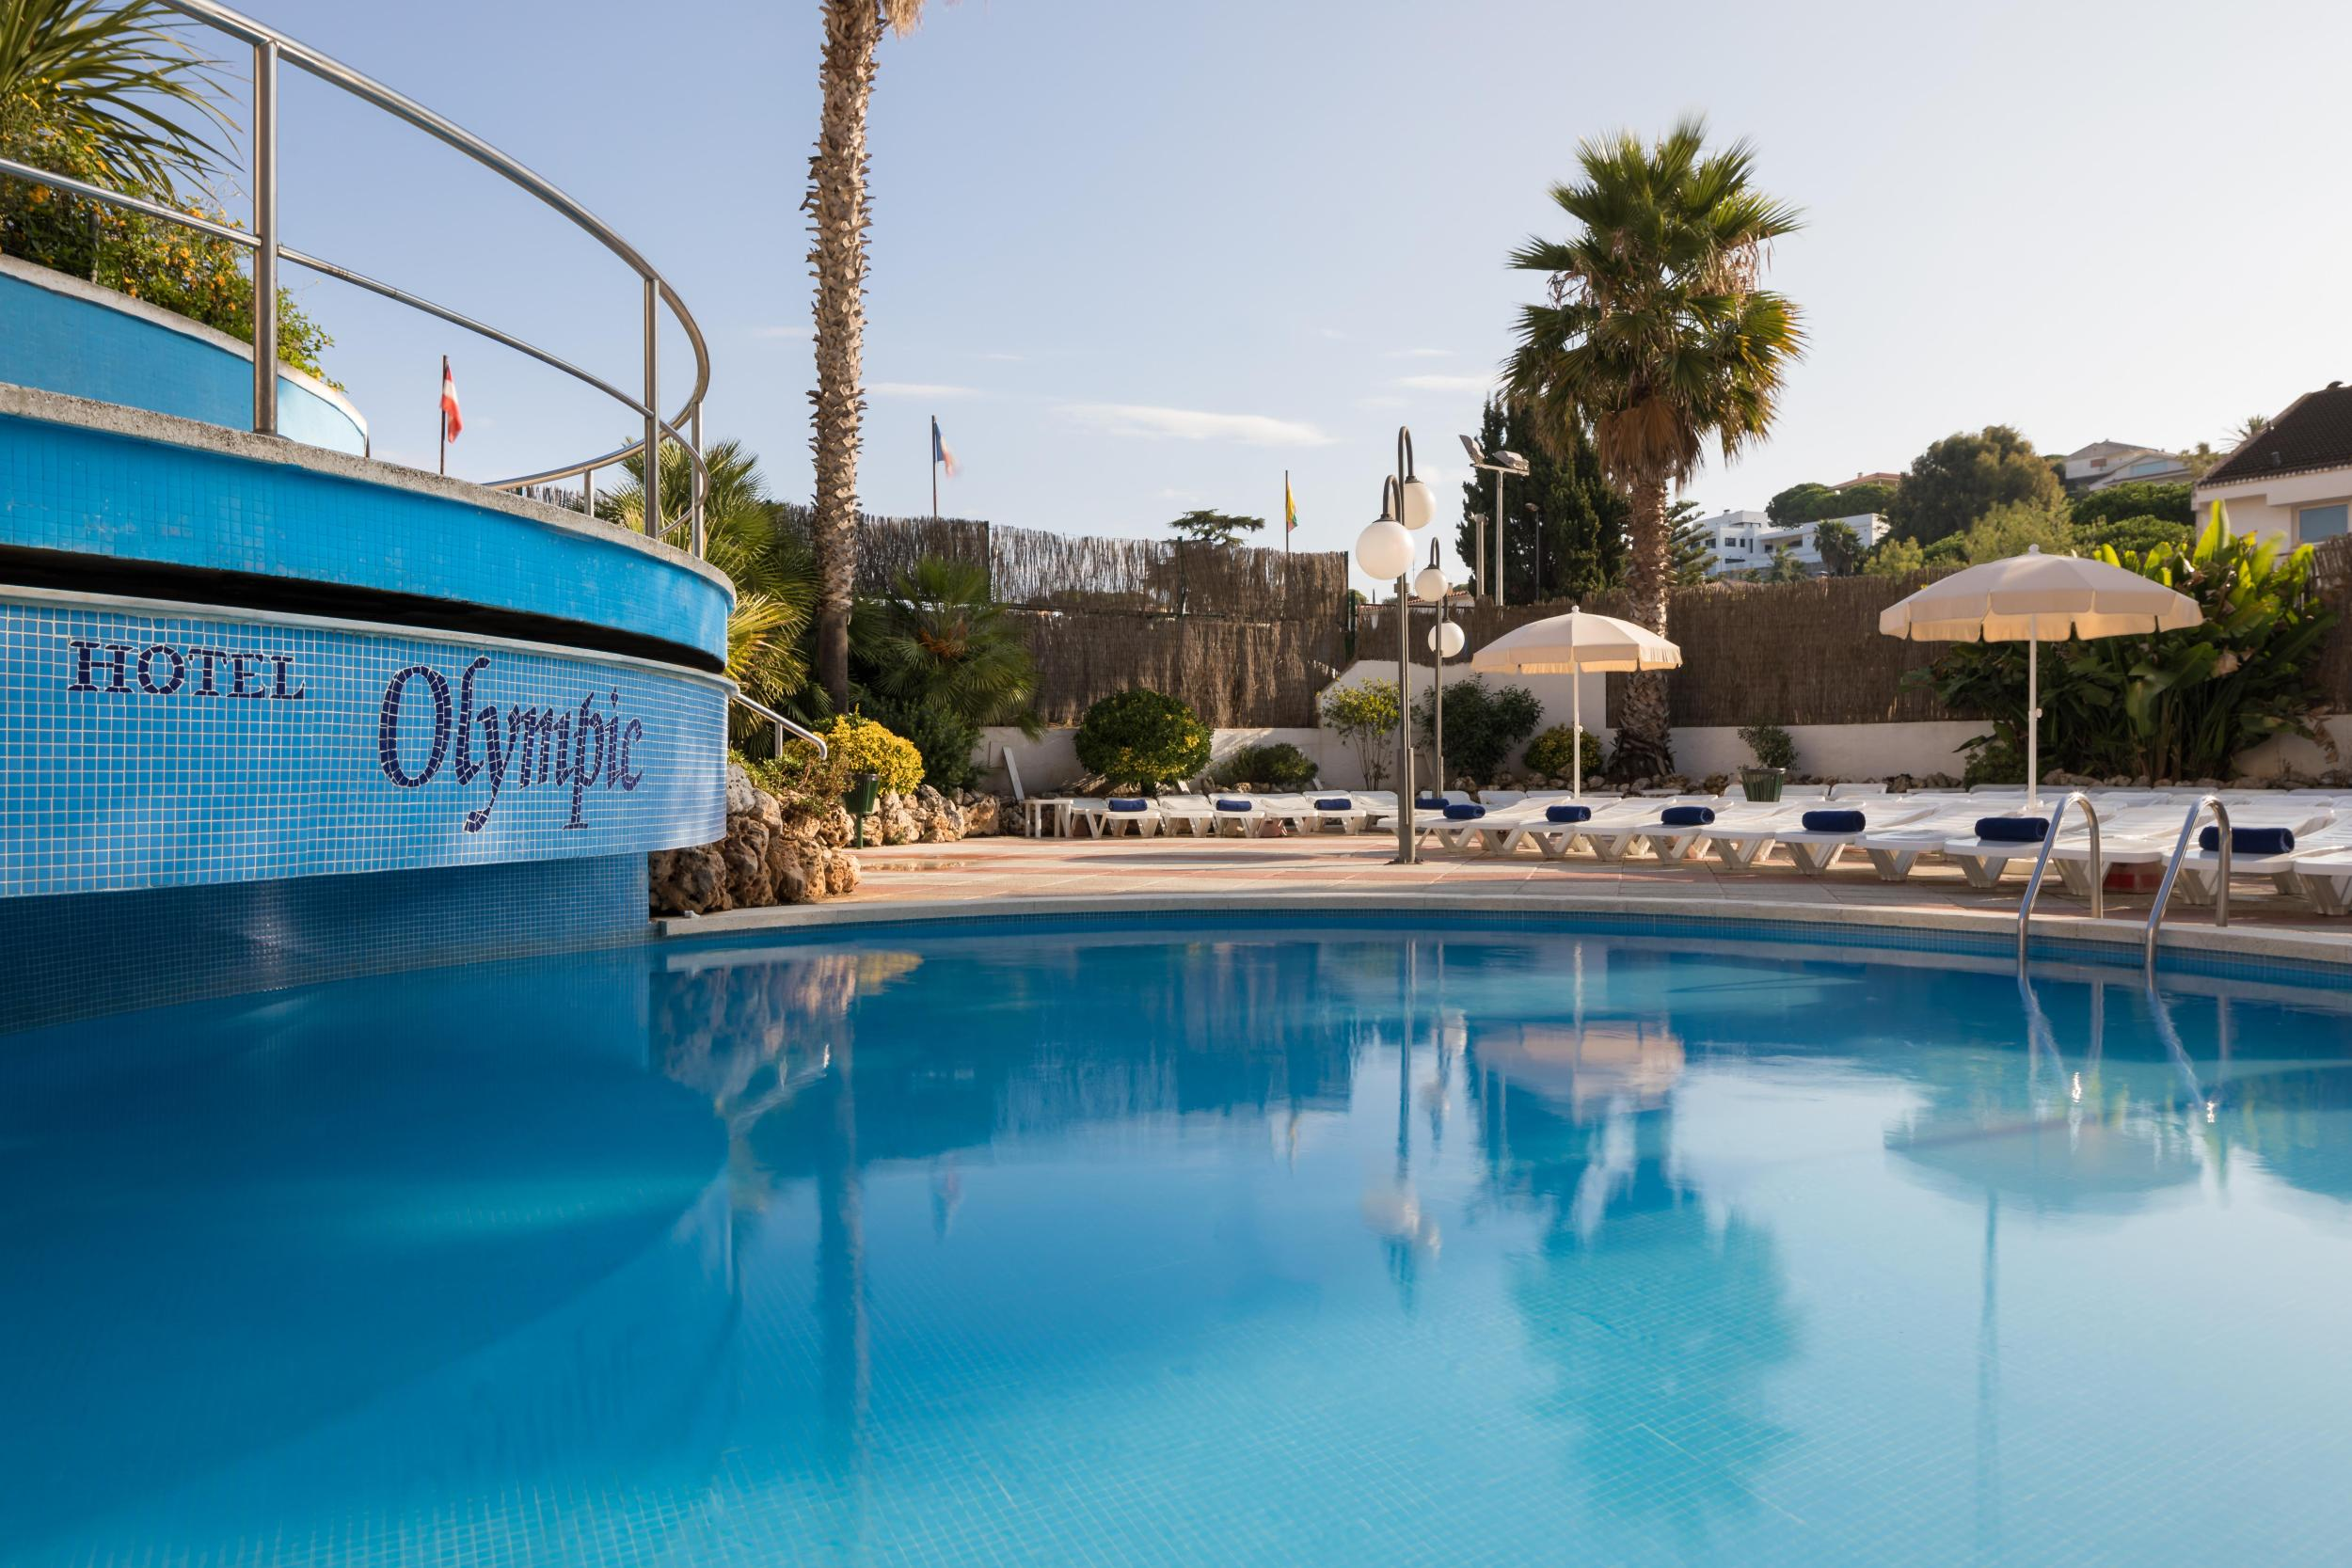 H.TOP Olympic Hotel